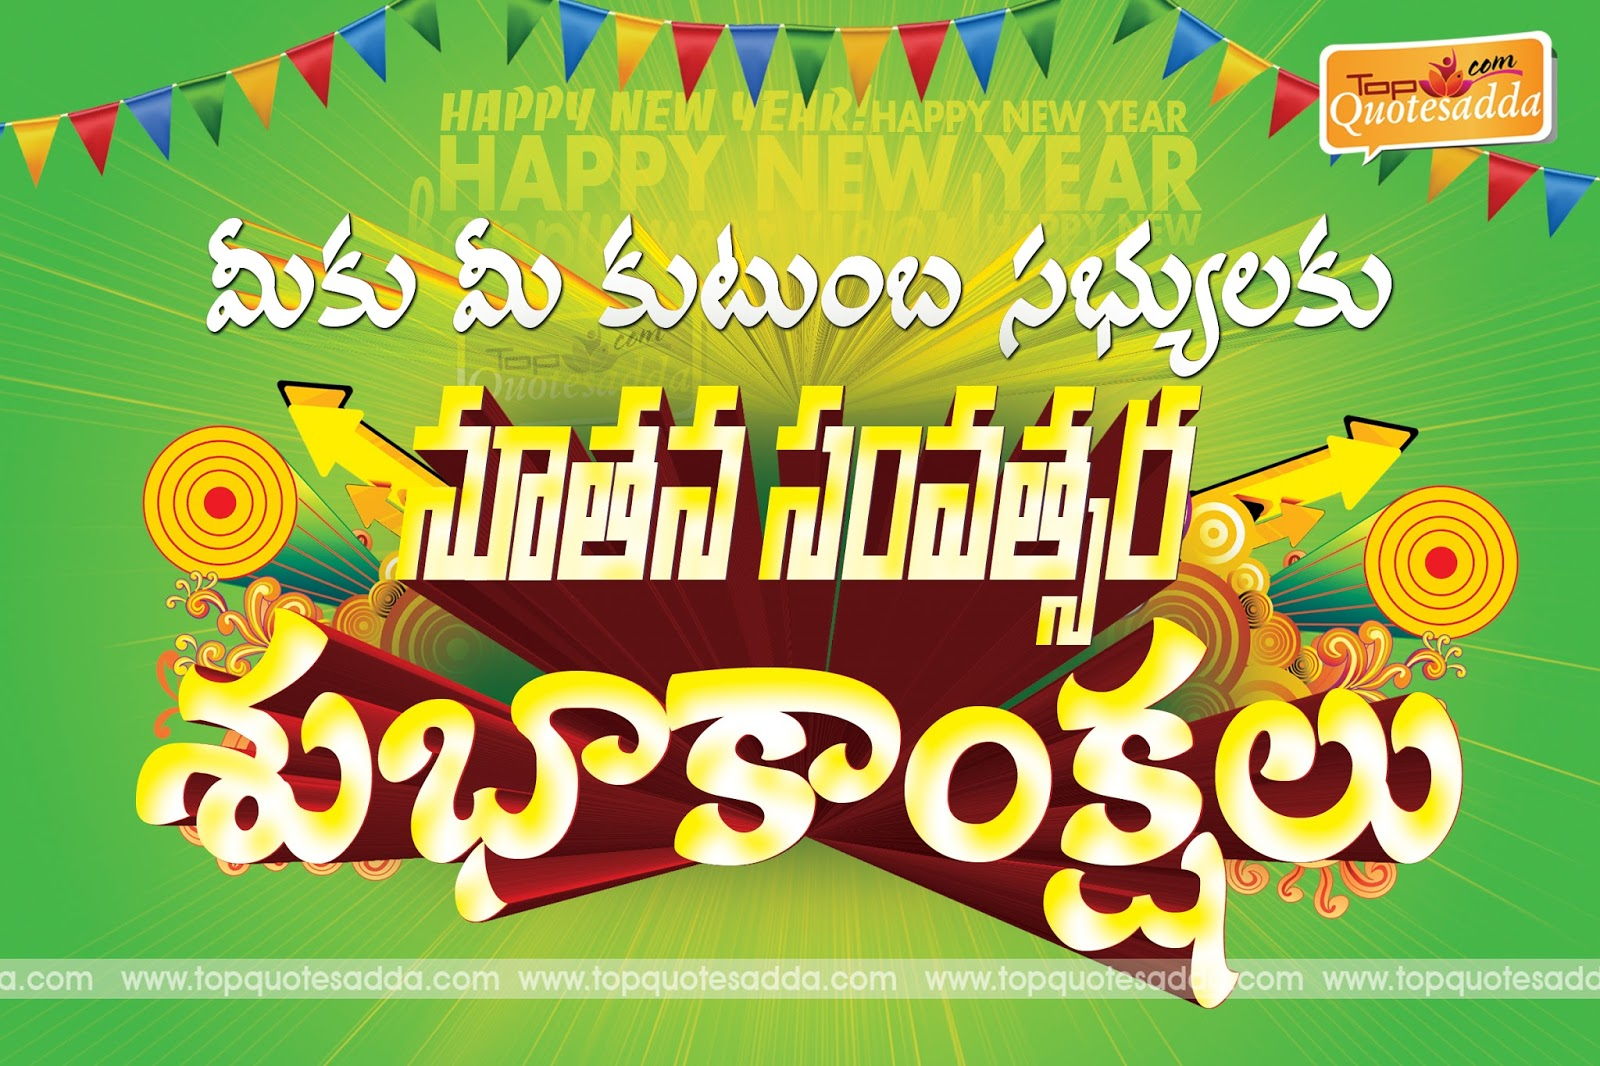 happy new year 3d telugu quotes and greetings | Topquotesadda ...